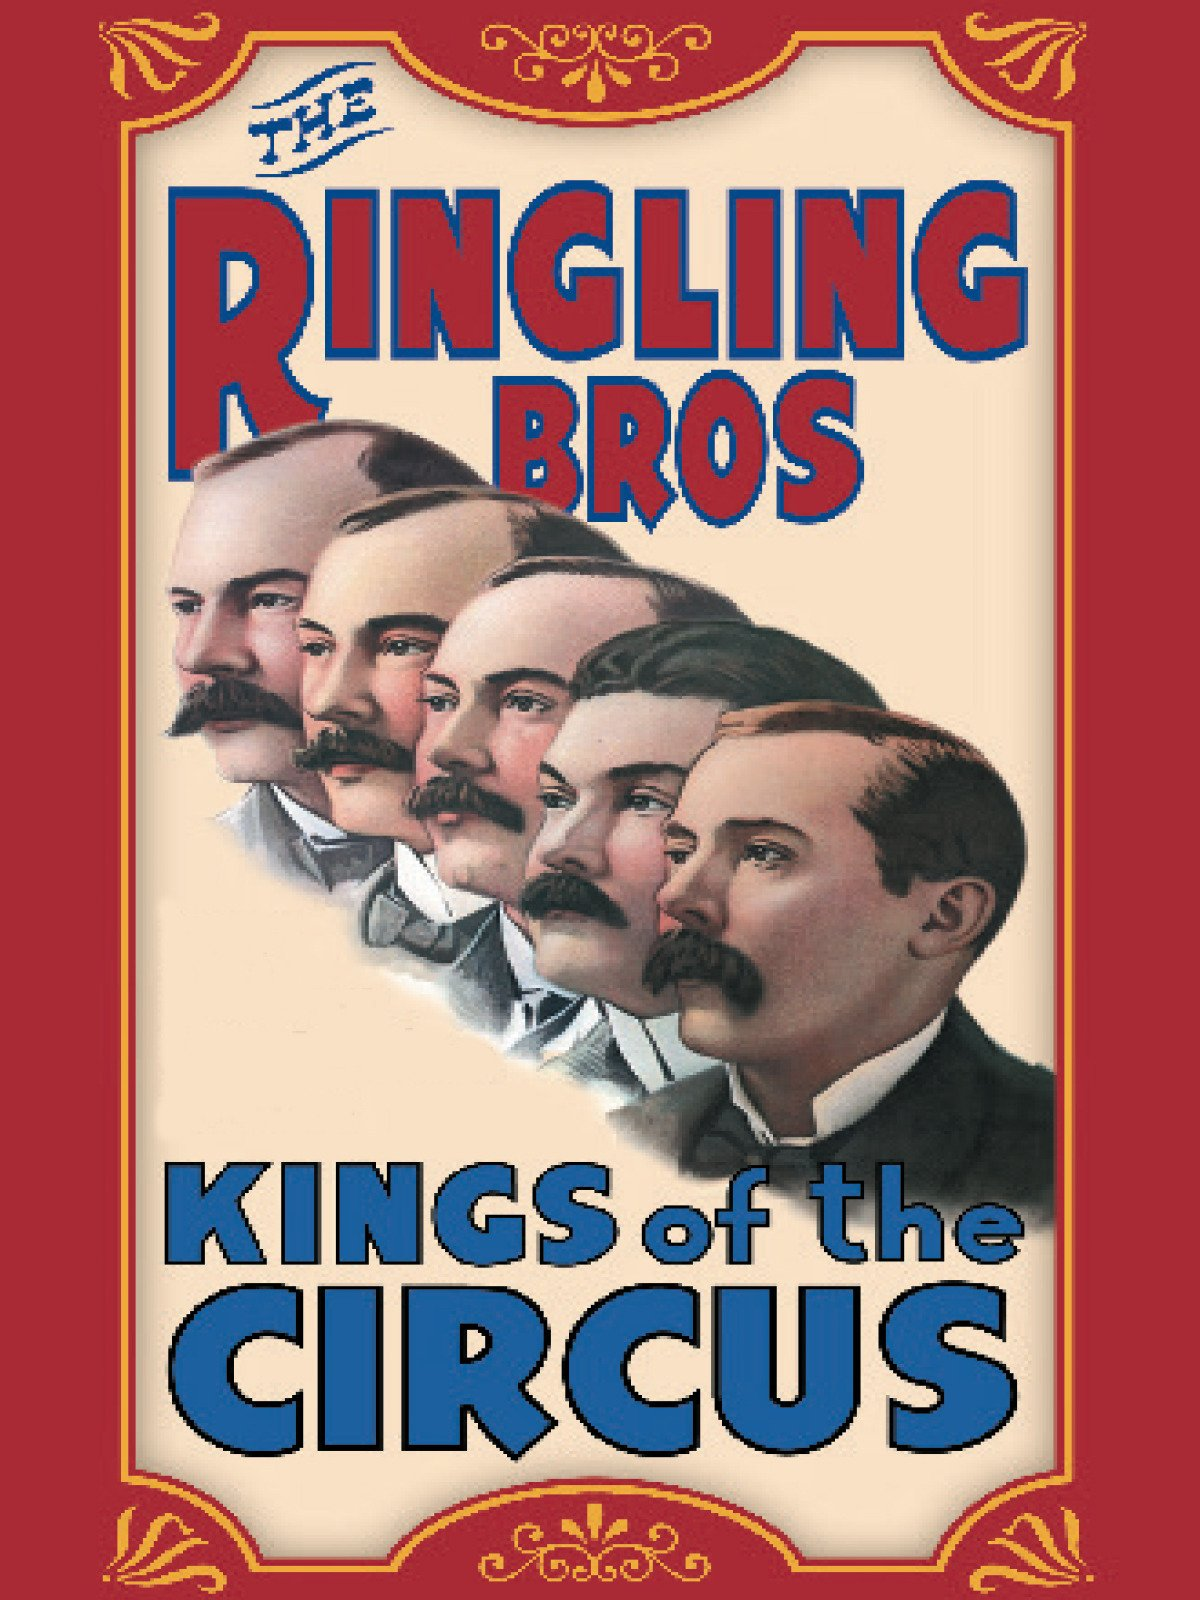 Buy Ringling Brothers Circus Now!